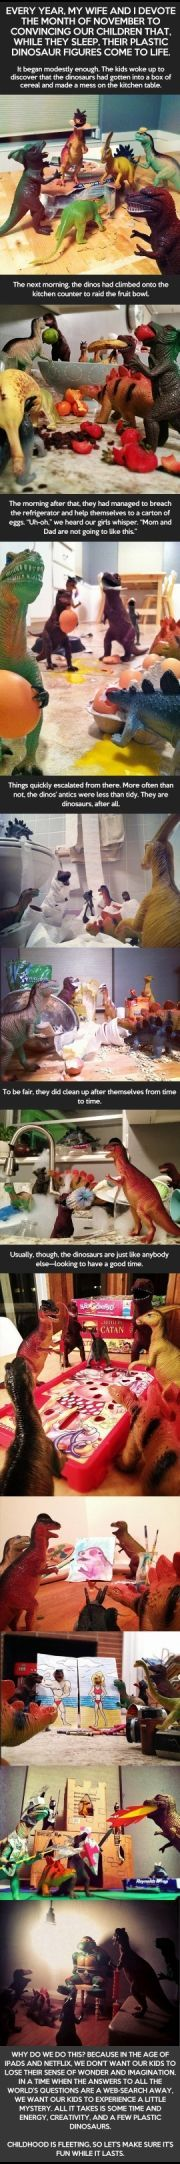 Restore a little mystery in your child's mind... Every night during the month of November, my children's dinosaurs come to life...